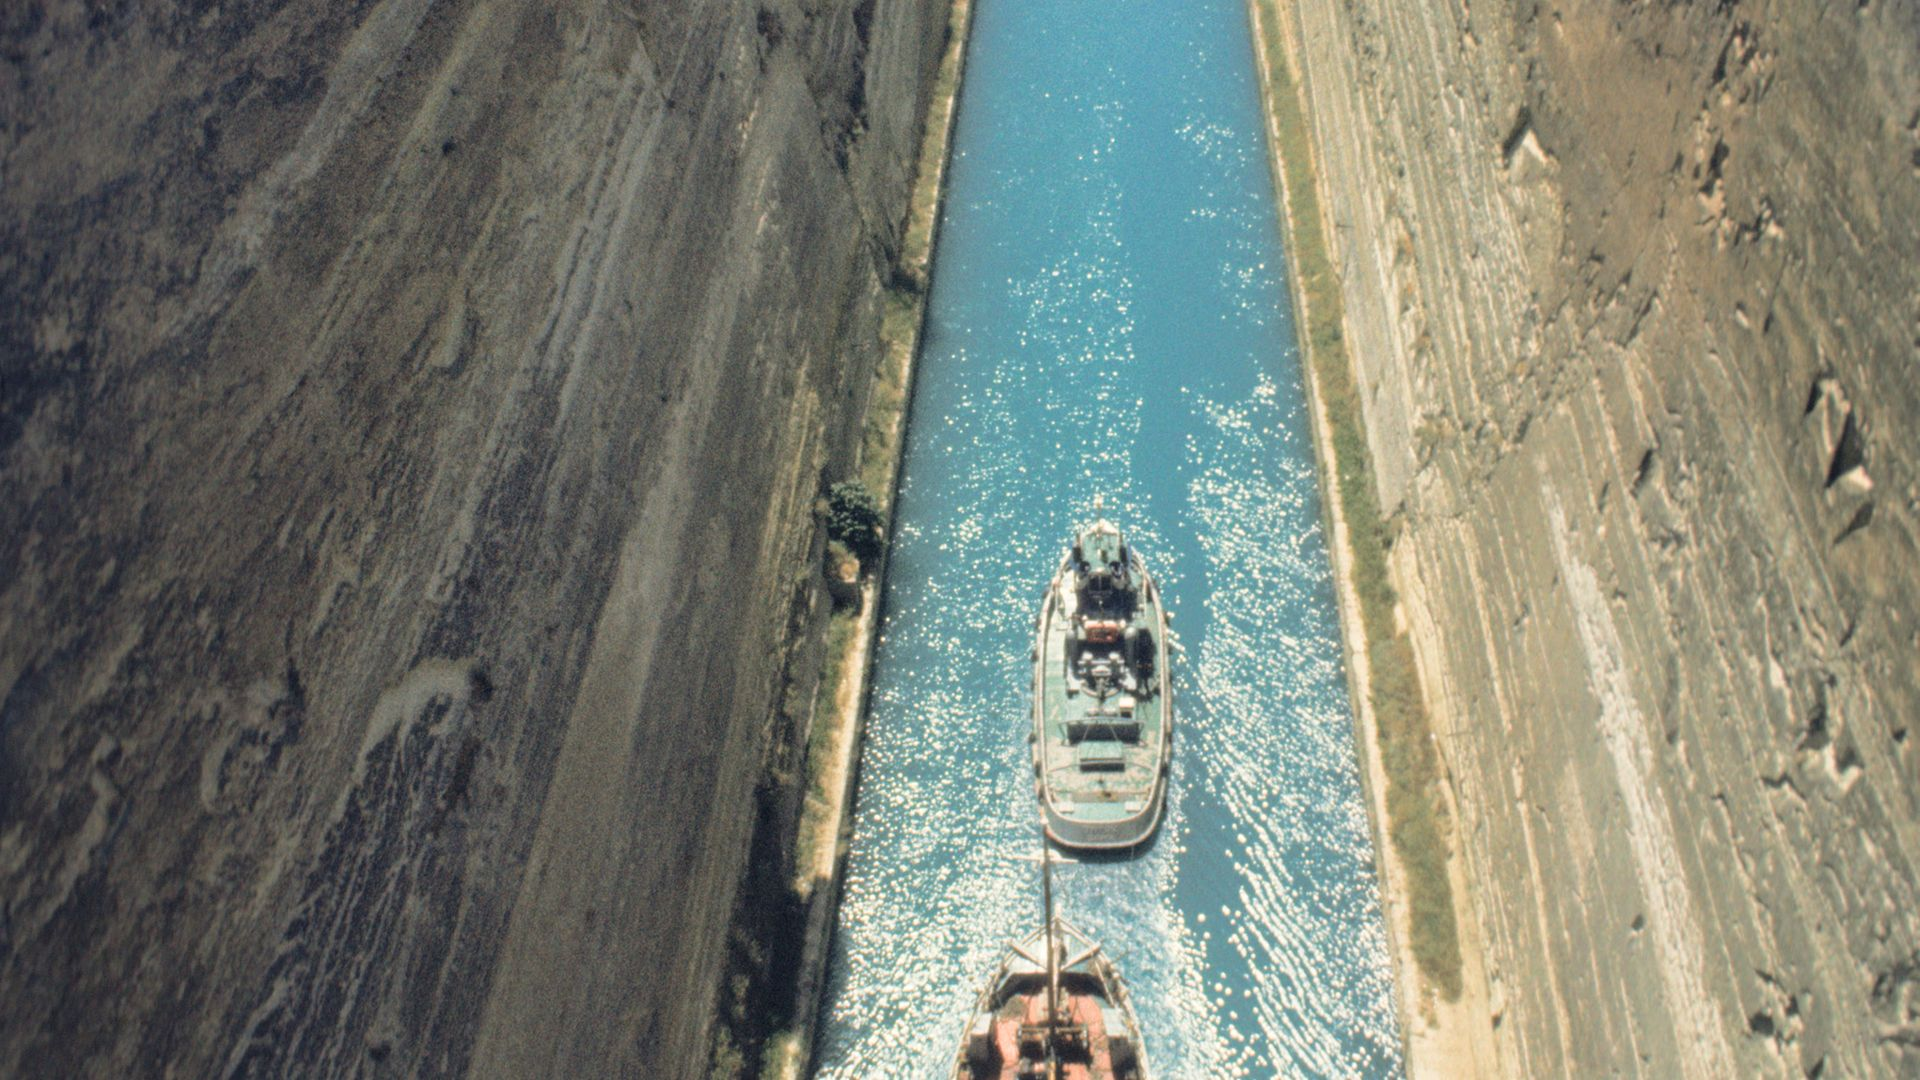 A tug boat and a larger vessel pass along the Corinth canal, in Greece - Credit: Universal Images Group via Getty